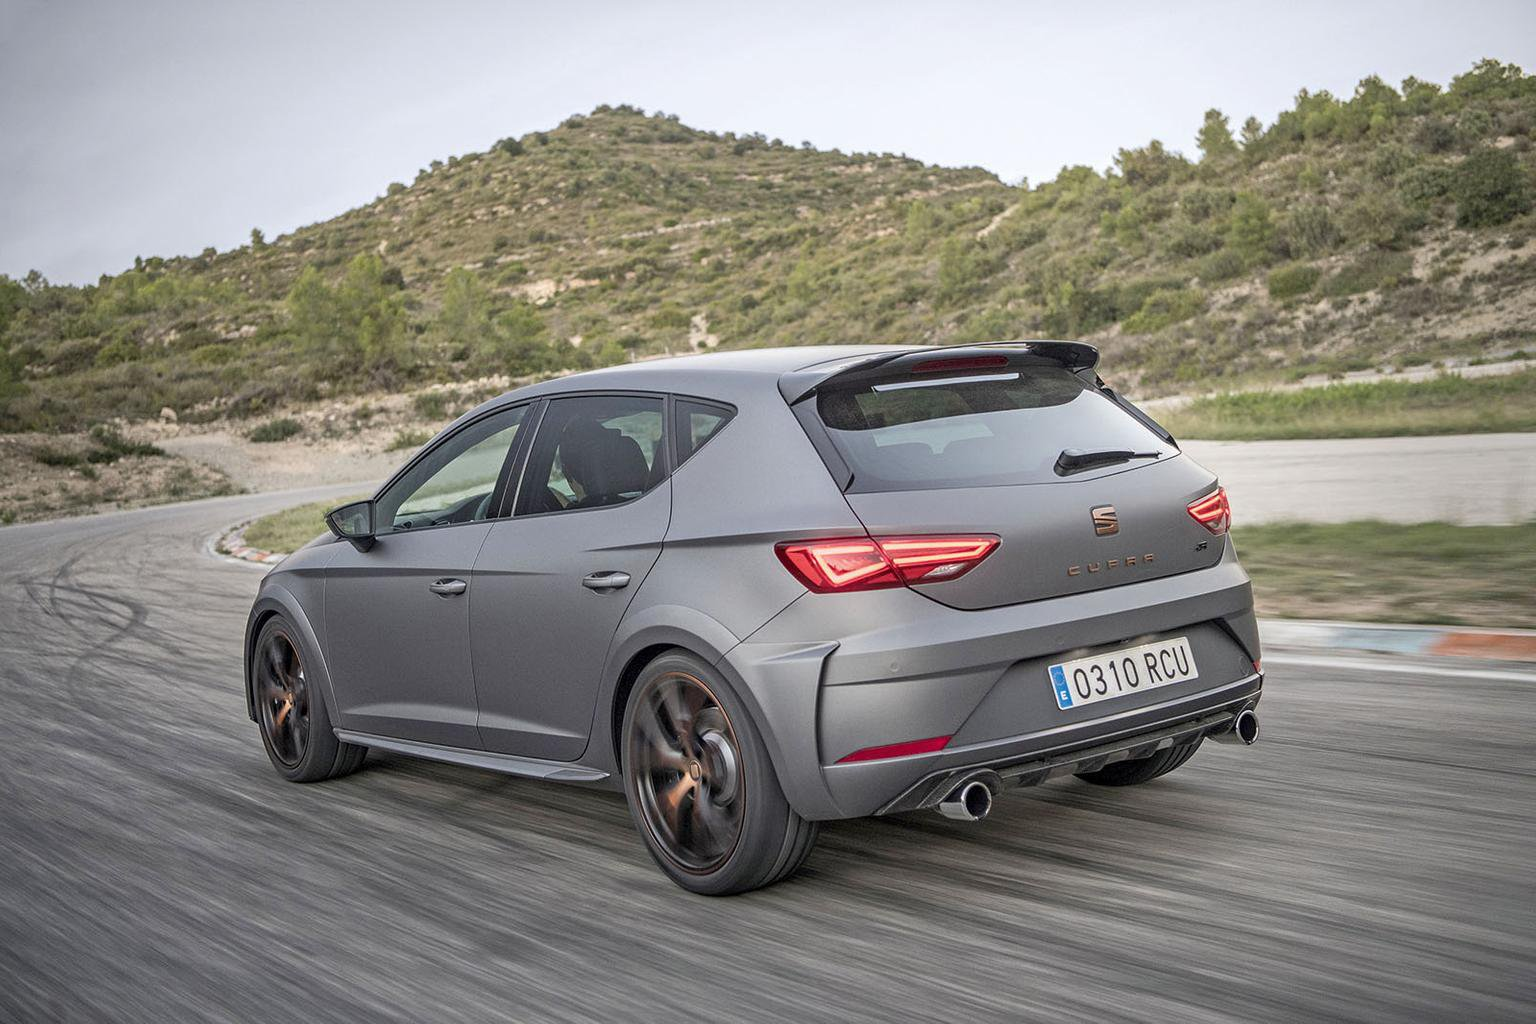 2017 Seat Leon Cupra R review - price, specs and release date